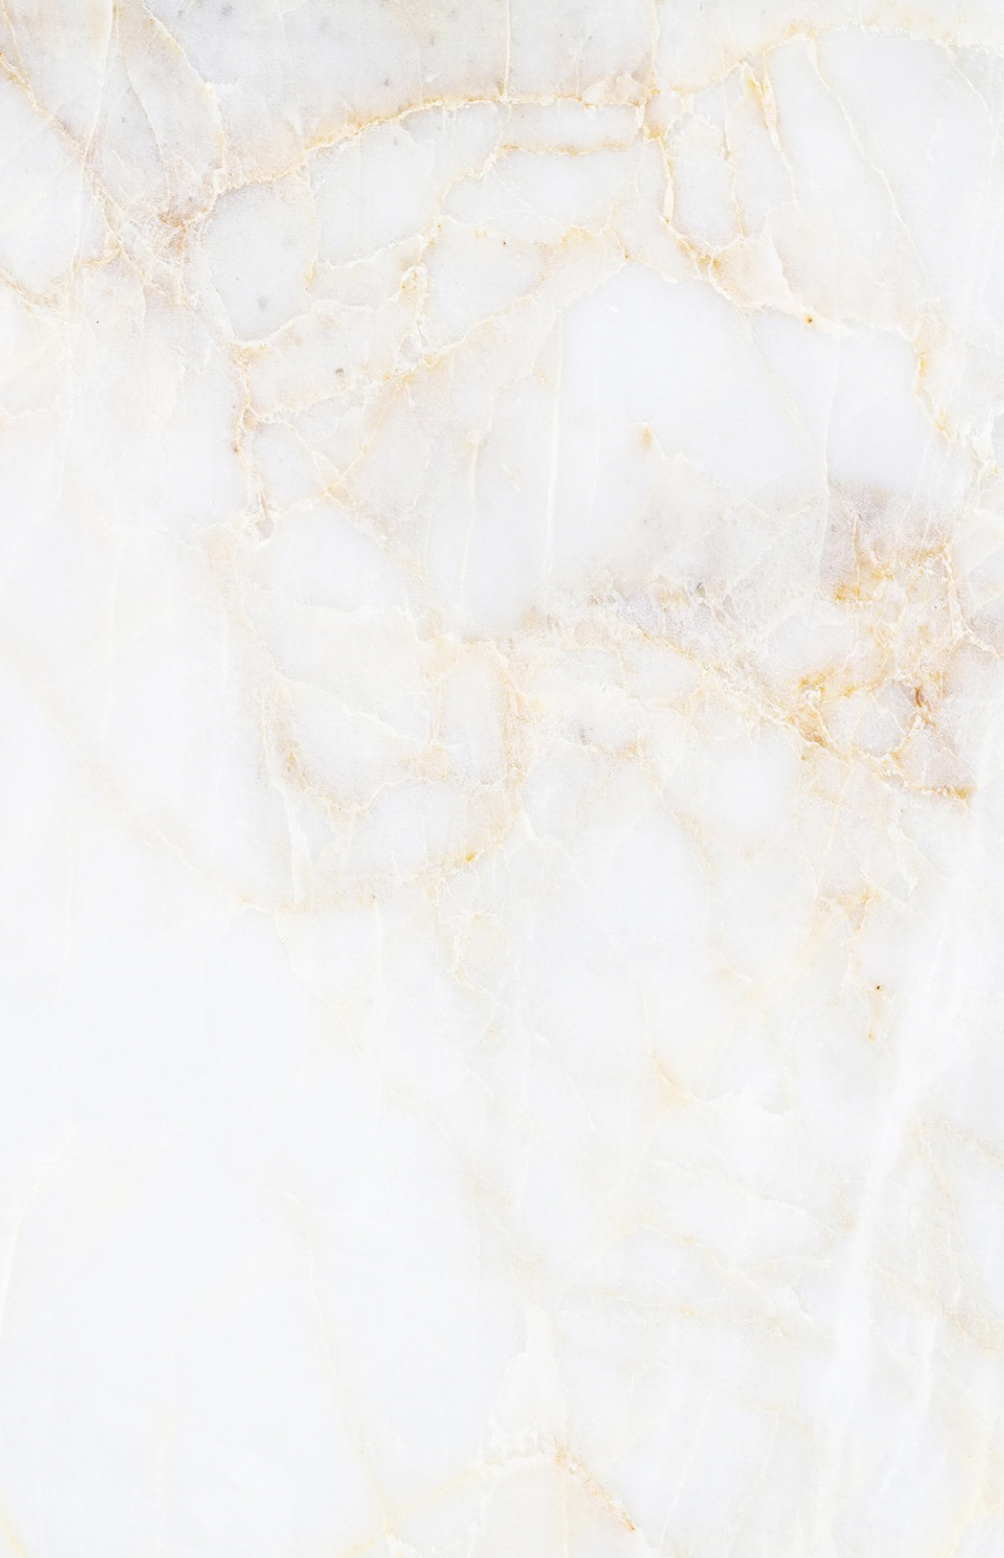 White And Gold Bedroom Chair: Beautiful White And Gold Marble.